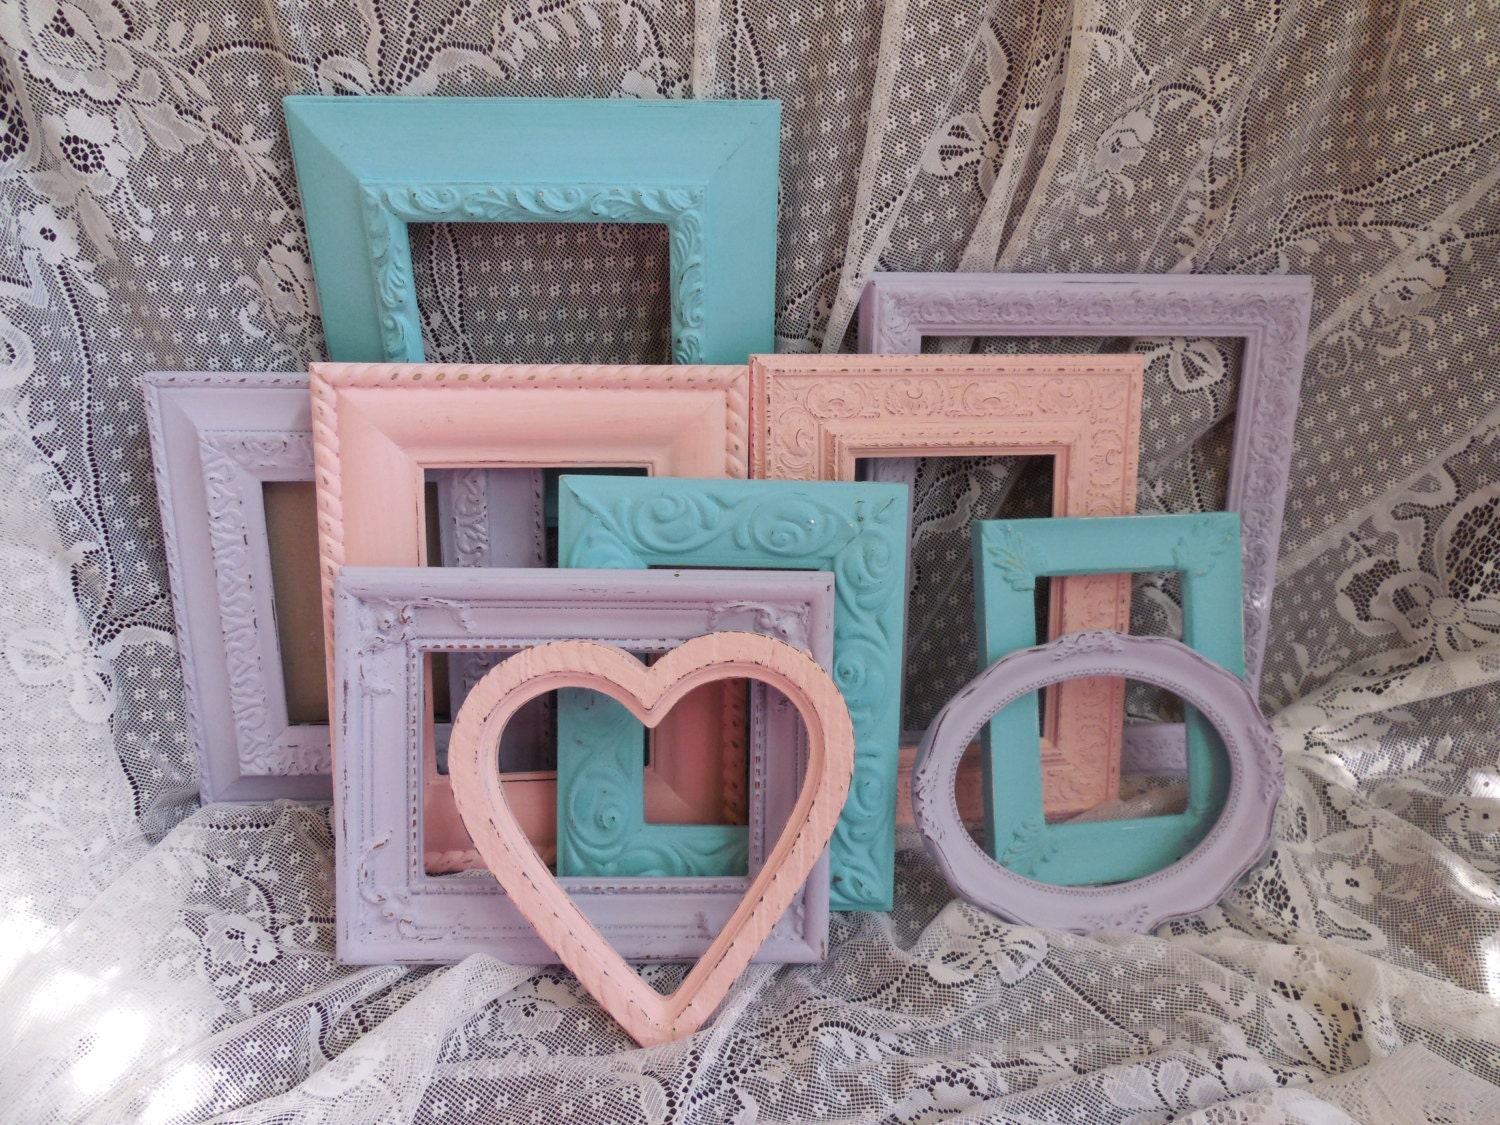 Pastel frames free shipping pink lavender teal lilac aqua pastel frames free shipping pink lavender teal lilac aqua turquoise nursery picture frames decor wedding photo 8x10 5x7 4x6 jeuxipadfo Image collections